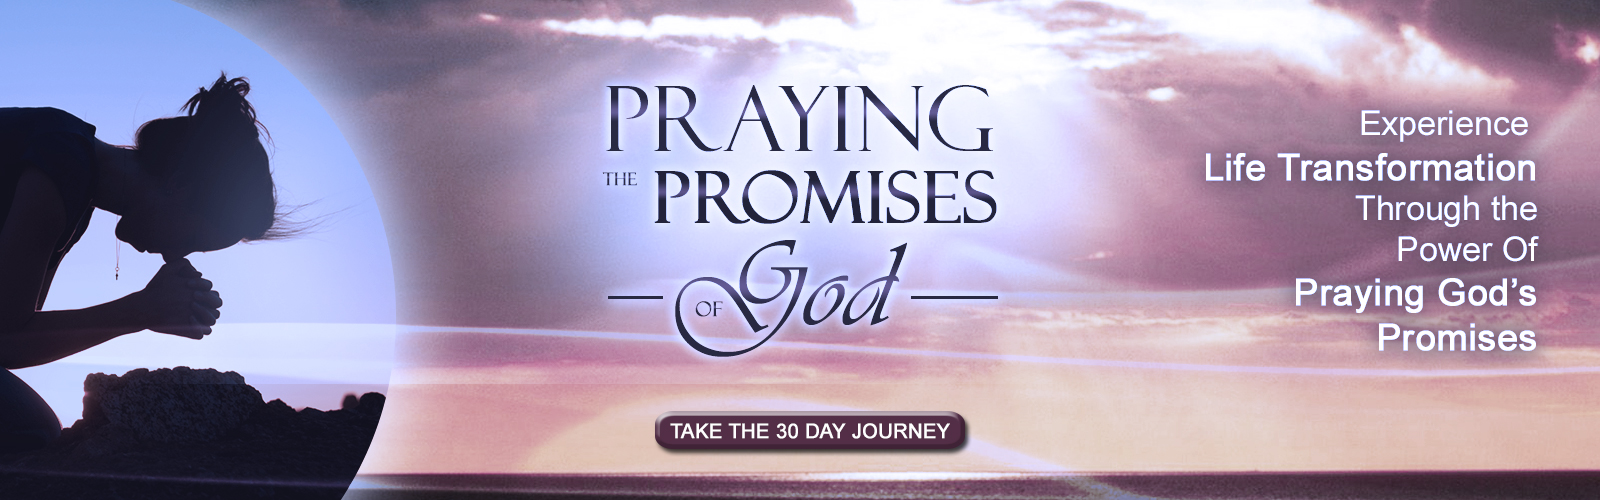 slider_praying_Gods_promises